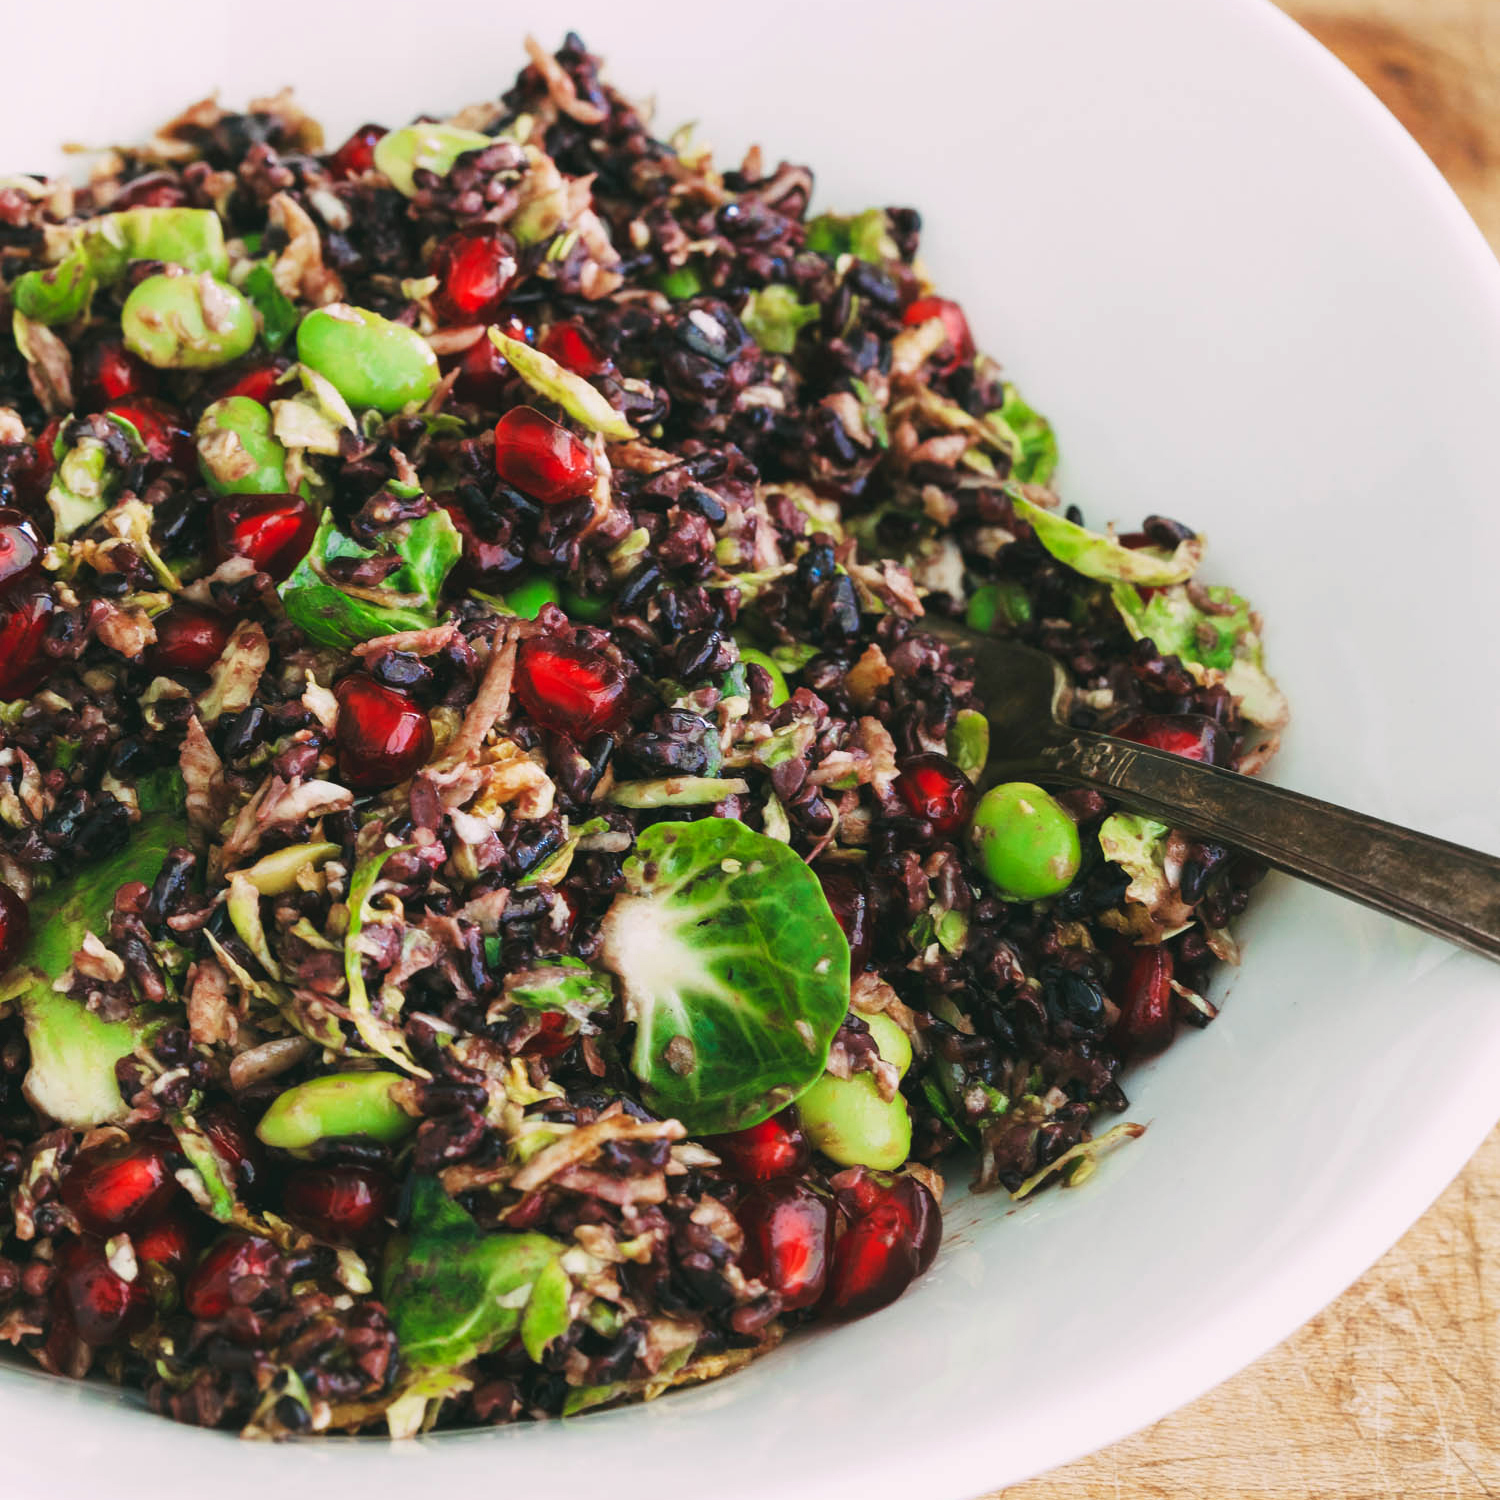 original-201501-r-black-rice-salad-with-shaved-brussels-sprouts-edamame-and-pomegranate.jpg